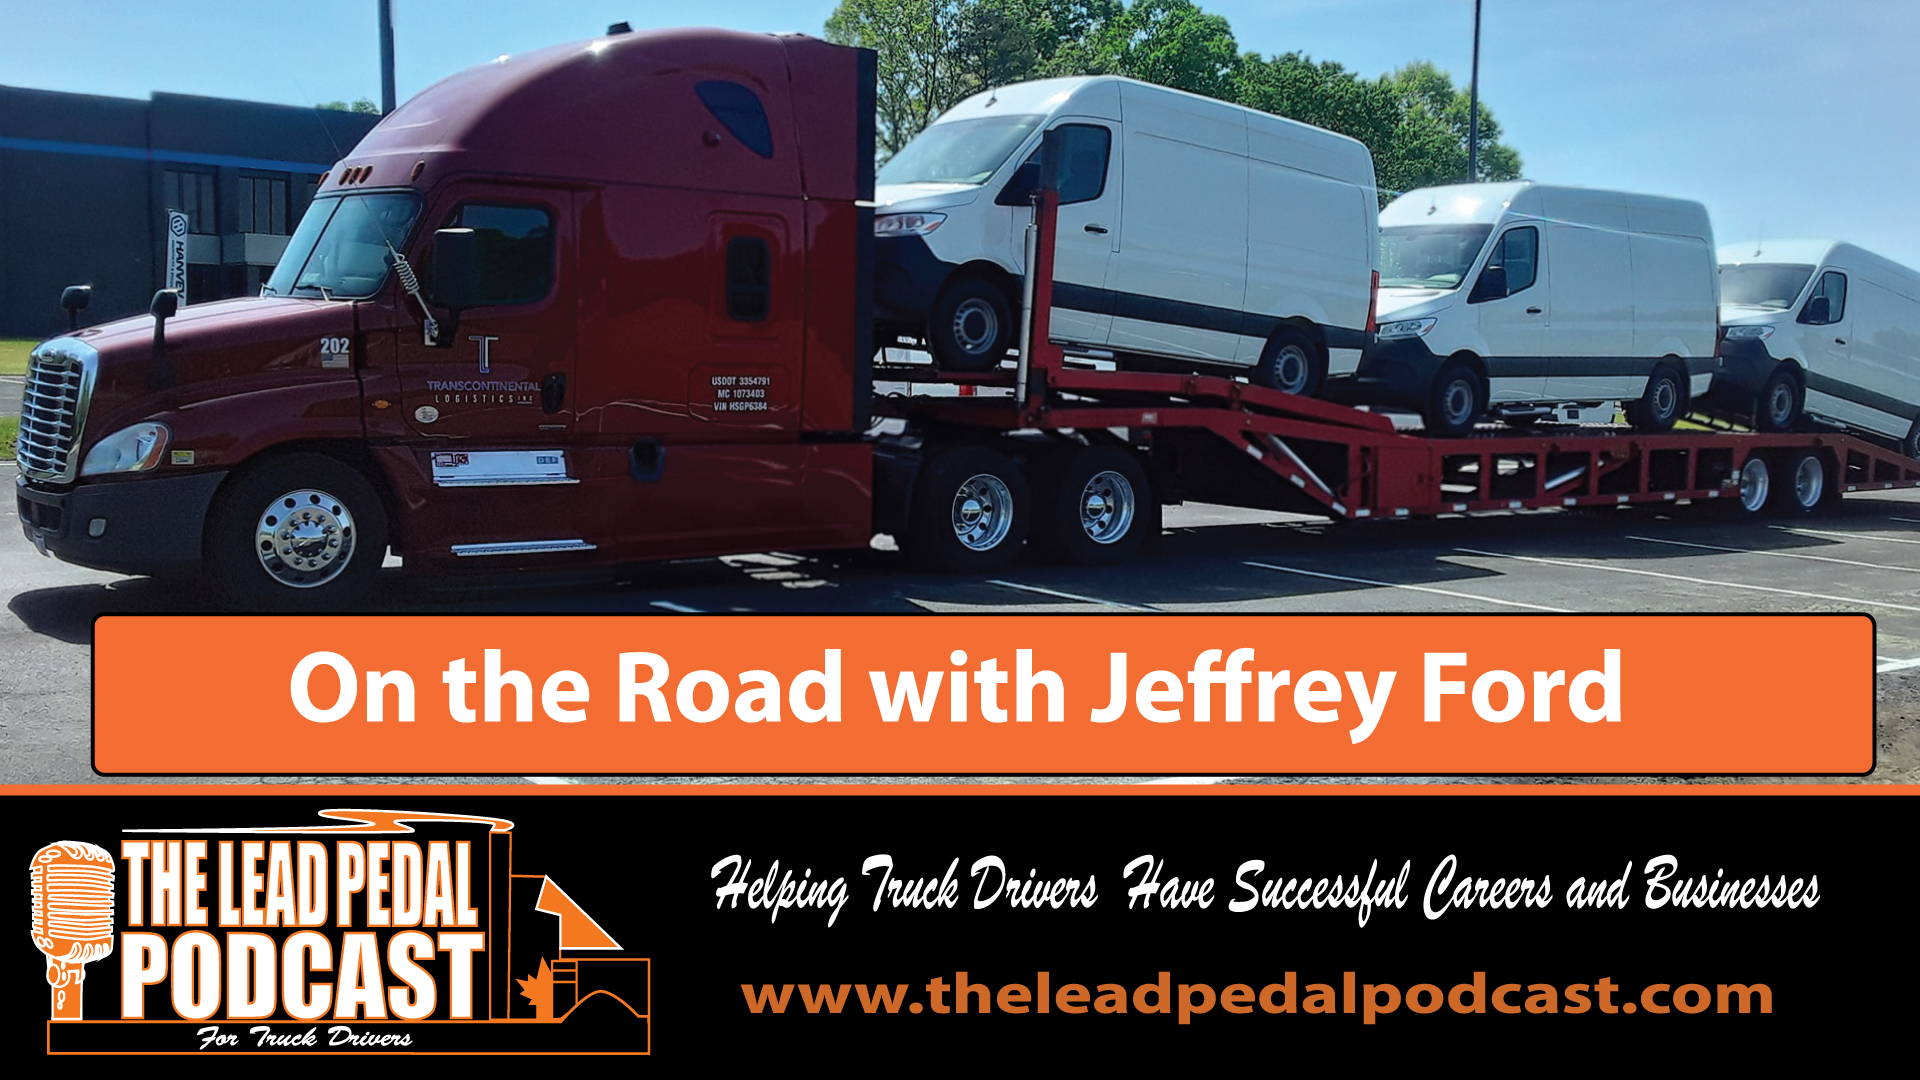 LP631 Over the Road with Jeffrey Ford